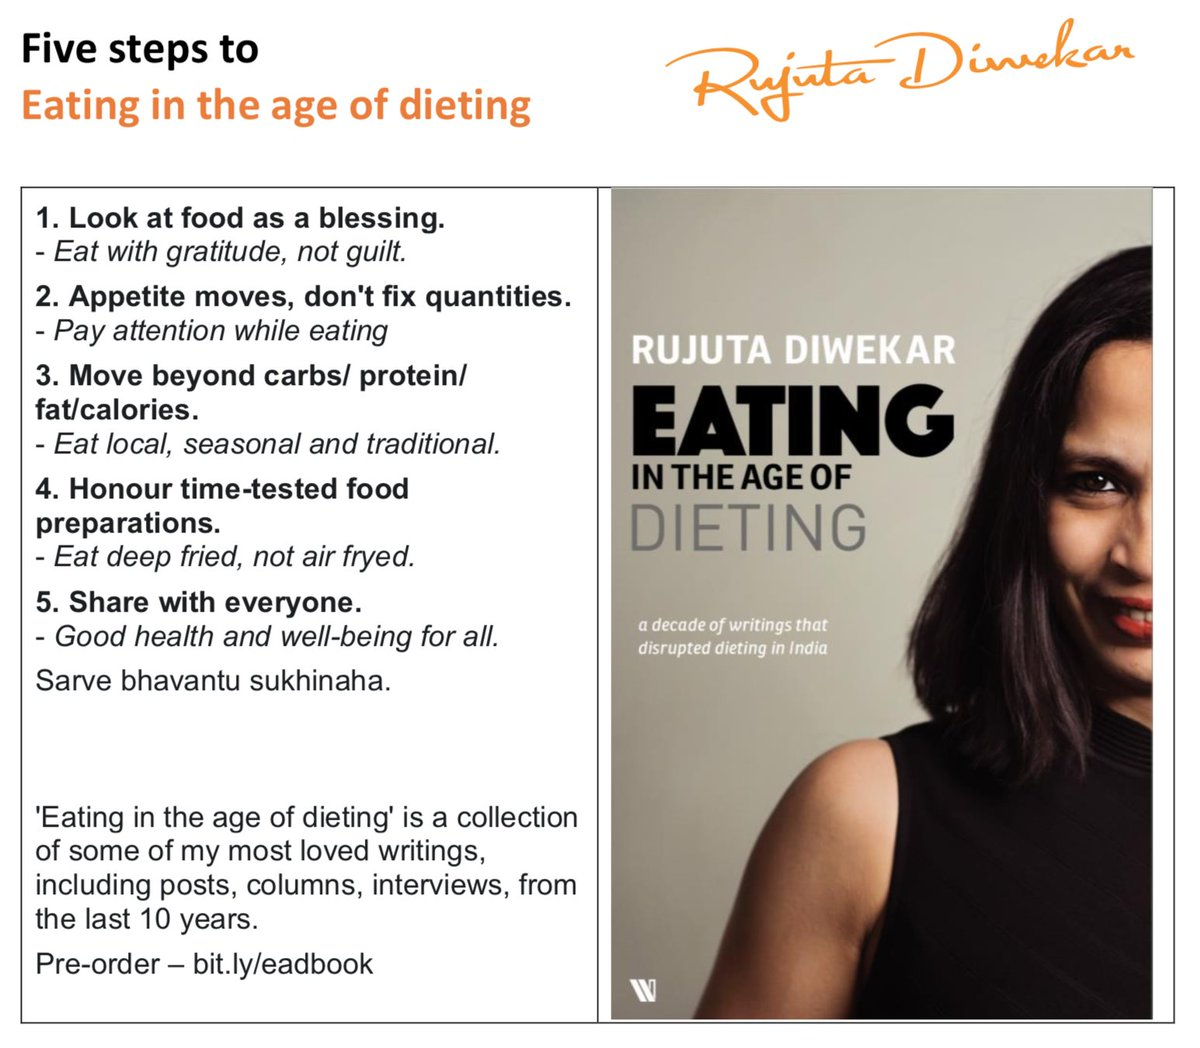 Rujuta Diwekar On Twitter 5 Steps To Eating In The Age Of Dieting View Food As A Blessing Appetite Moves Don T Fix Quantities Move Beyond Food Groups Eat Local Seasonal Honour